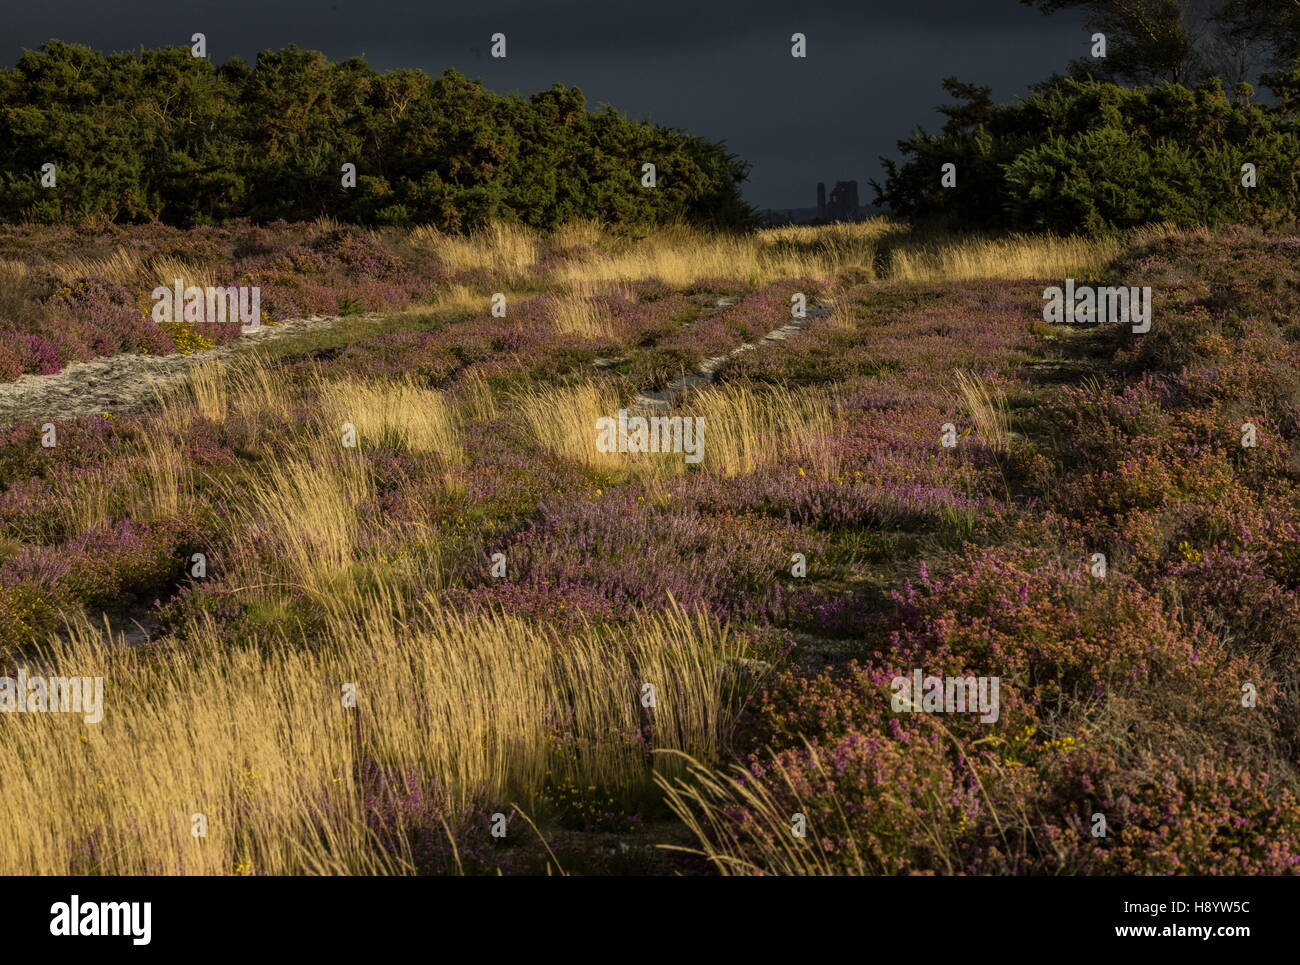 Corfe Castle from Middlebere Heath on a stormy late summer evening. Dorset. - Stock Image